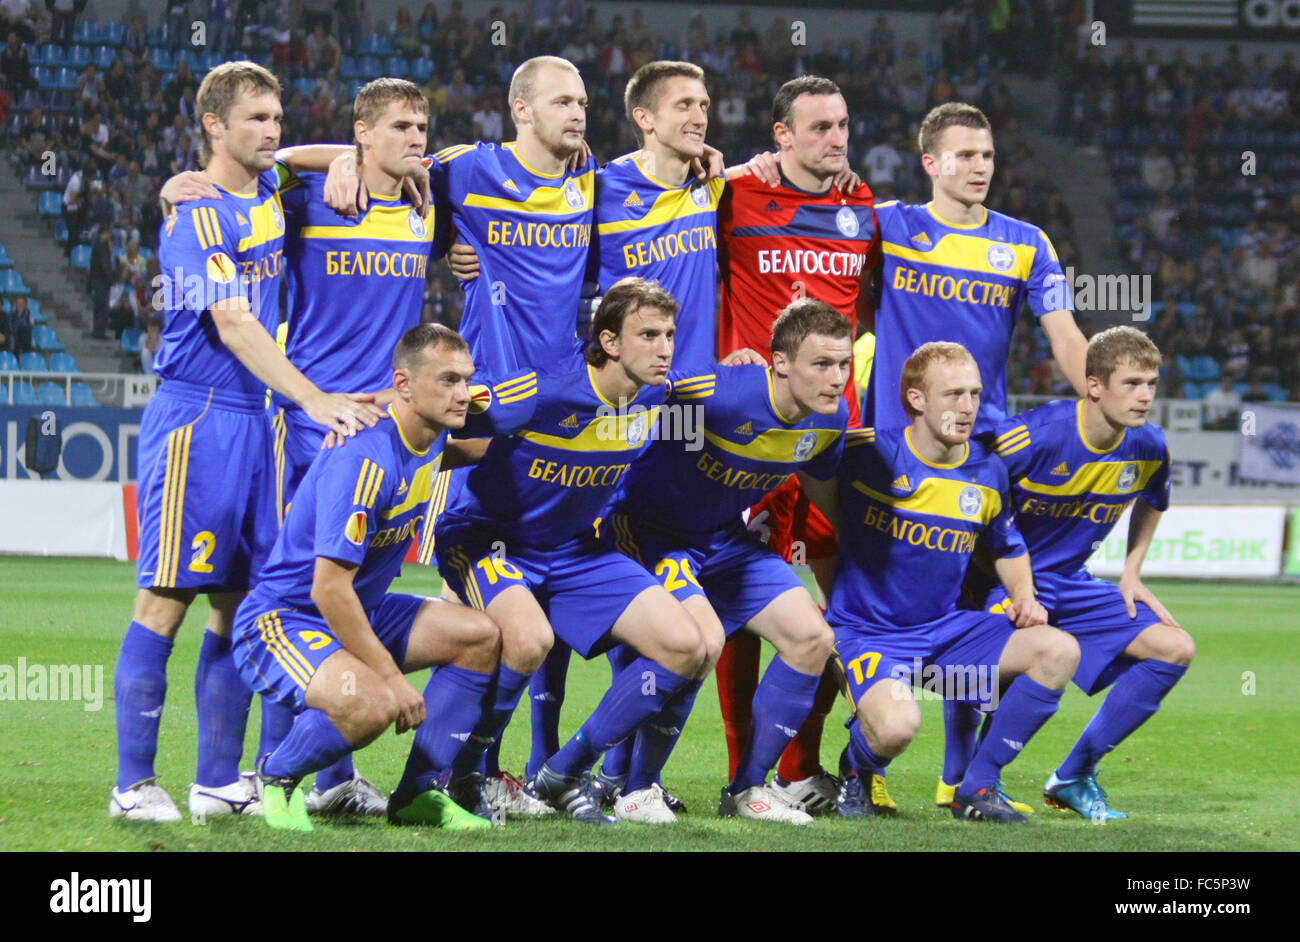 KYIV, UKRAINE - SEPTEMBER 16: FC BATE Borisov team pose for a group photo before UEFA Europa League game against - Stock Image